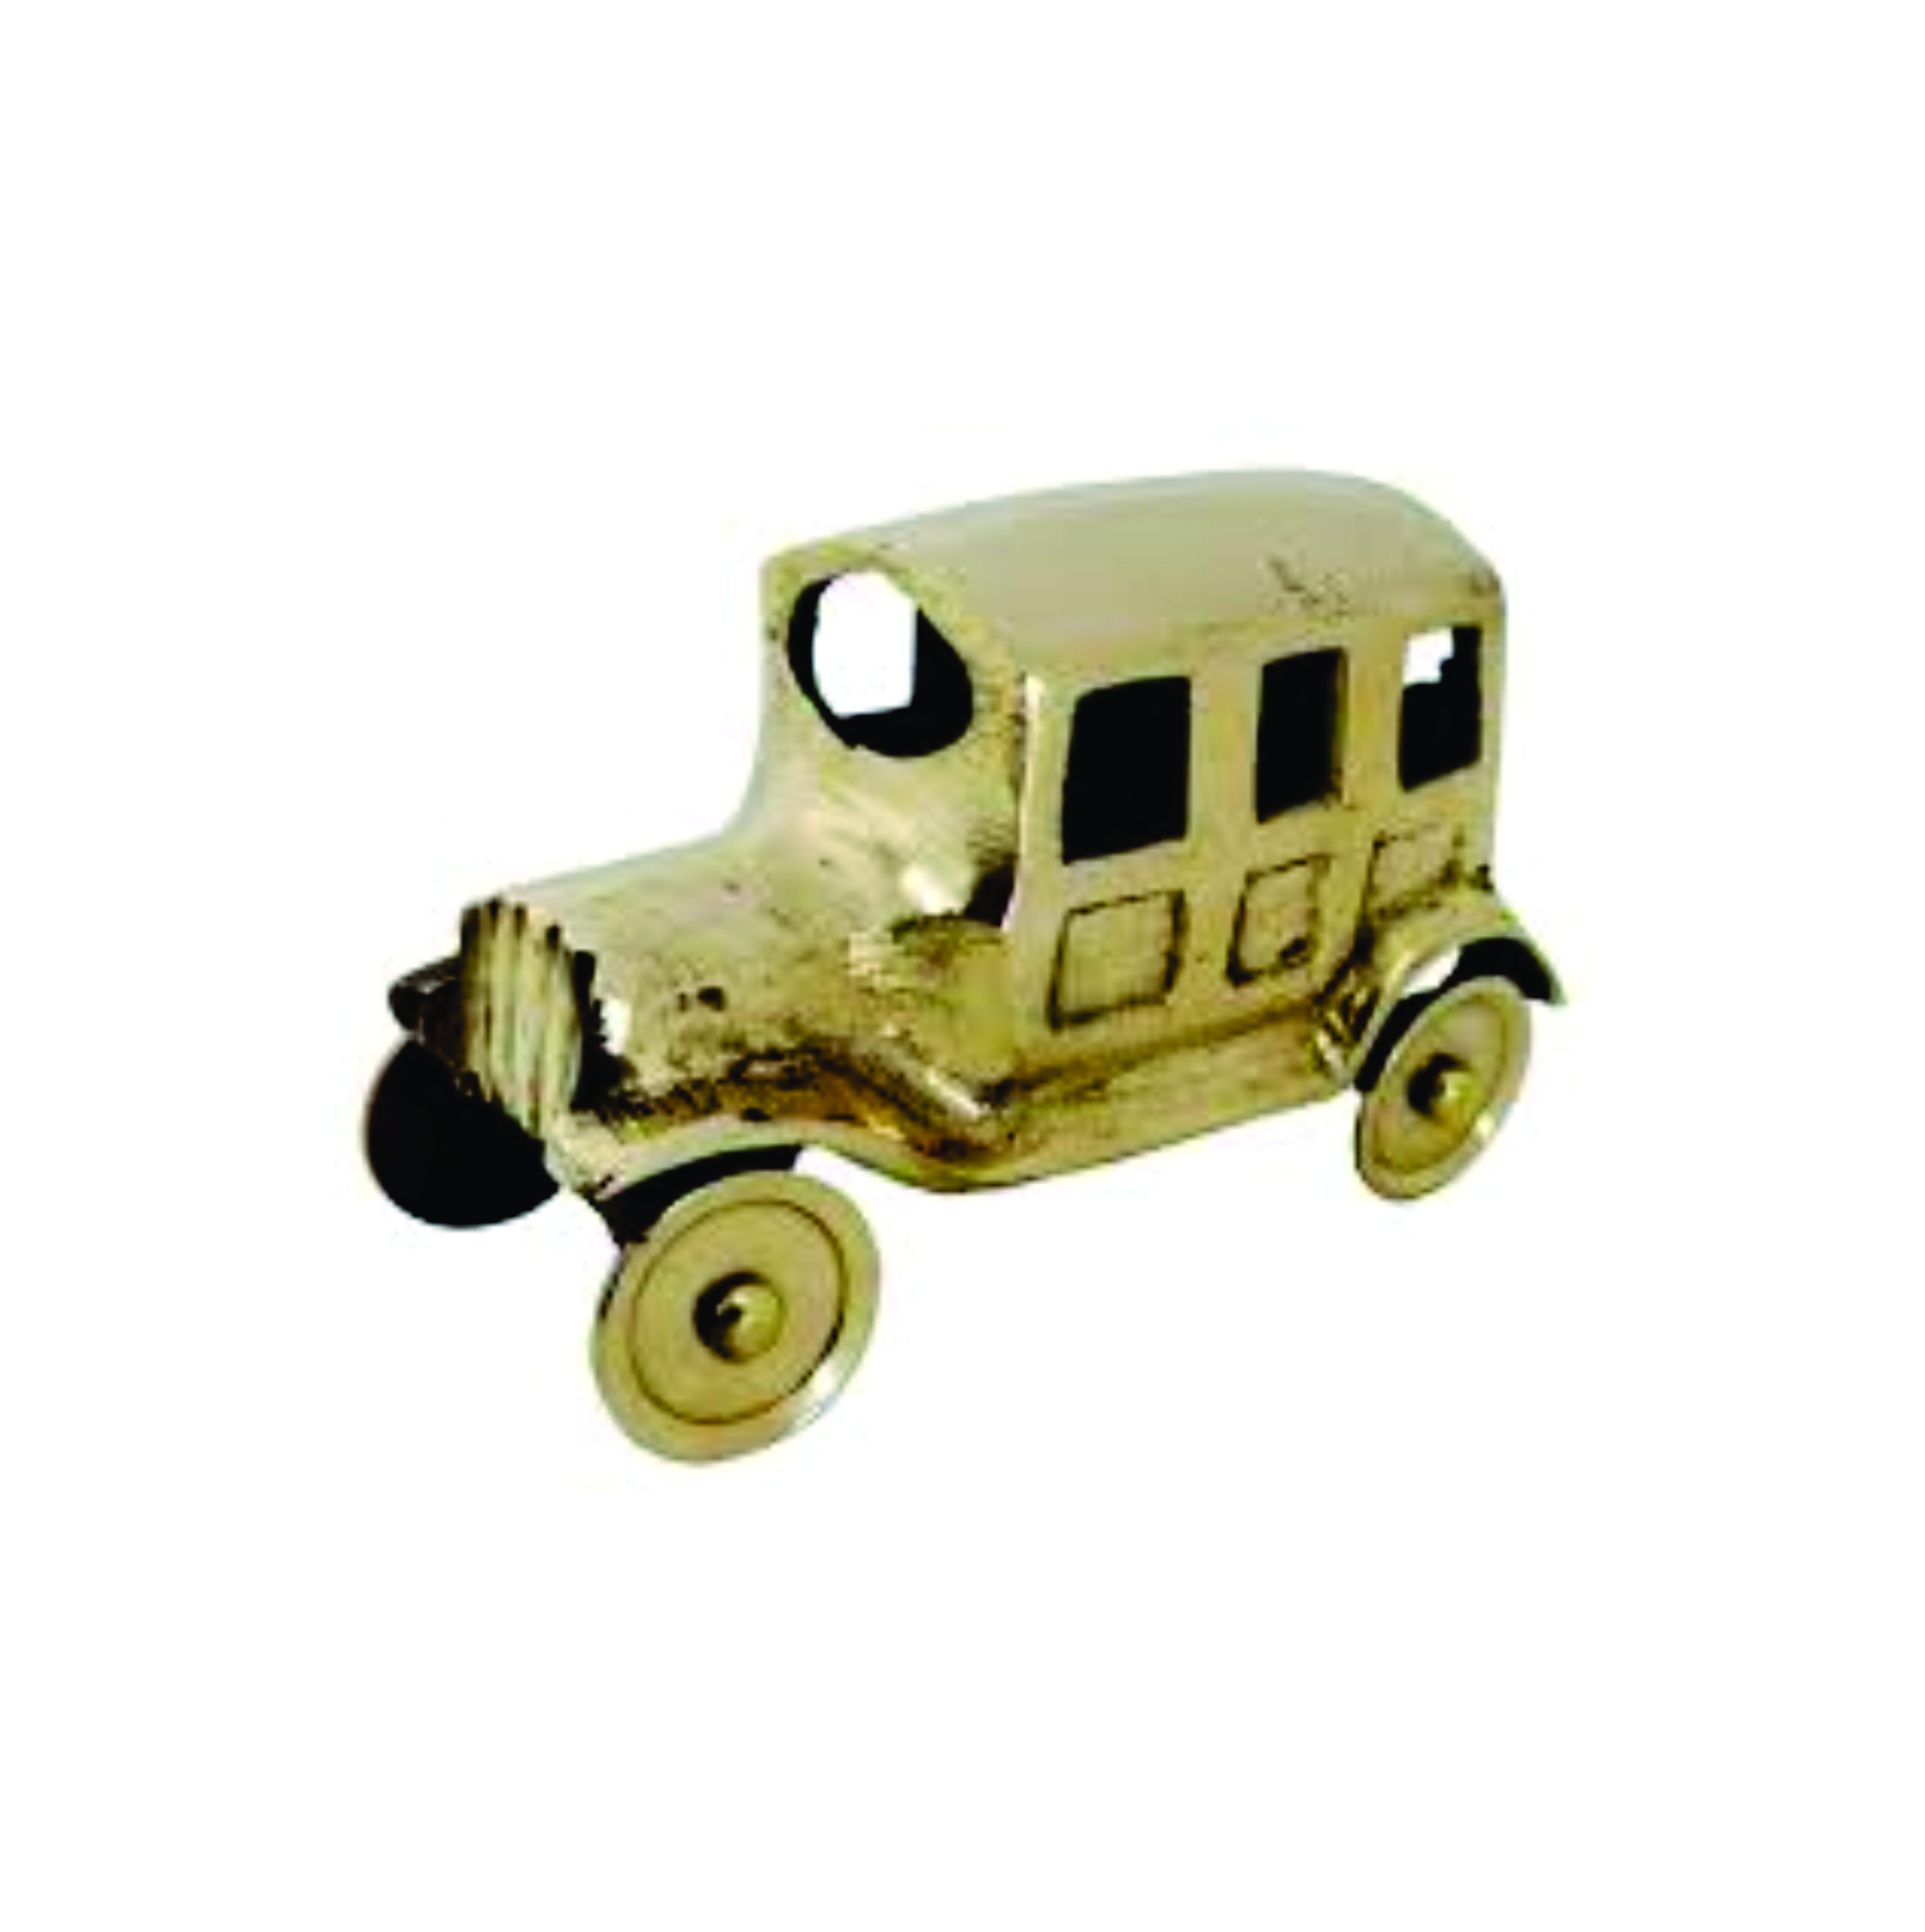 miniature toy cars made of brass